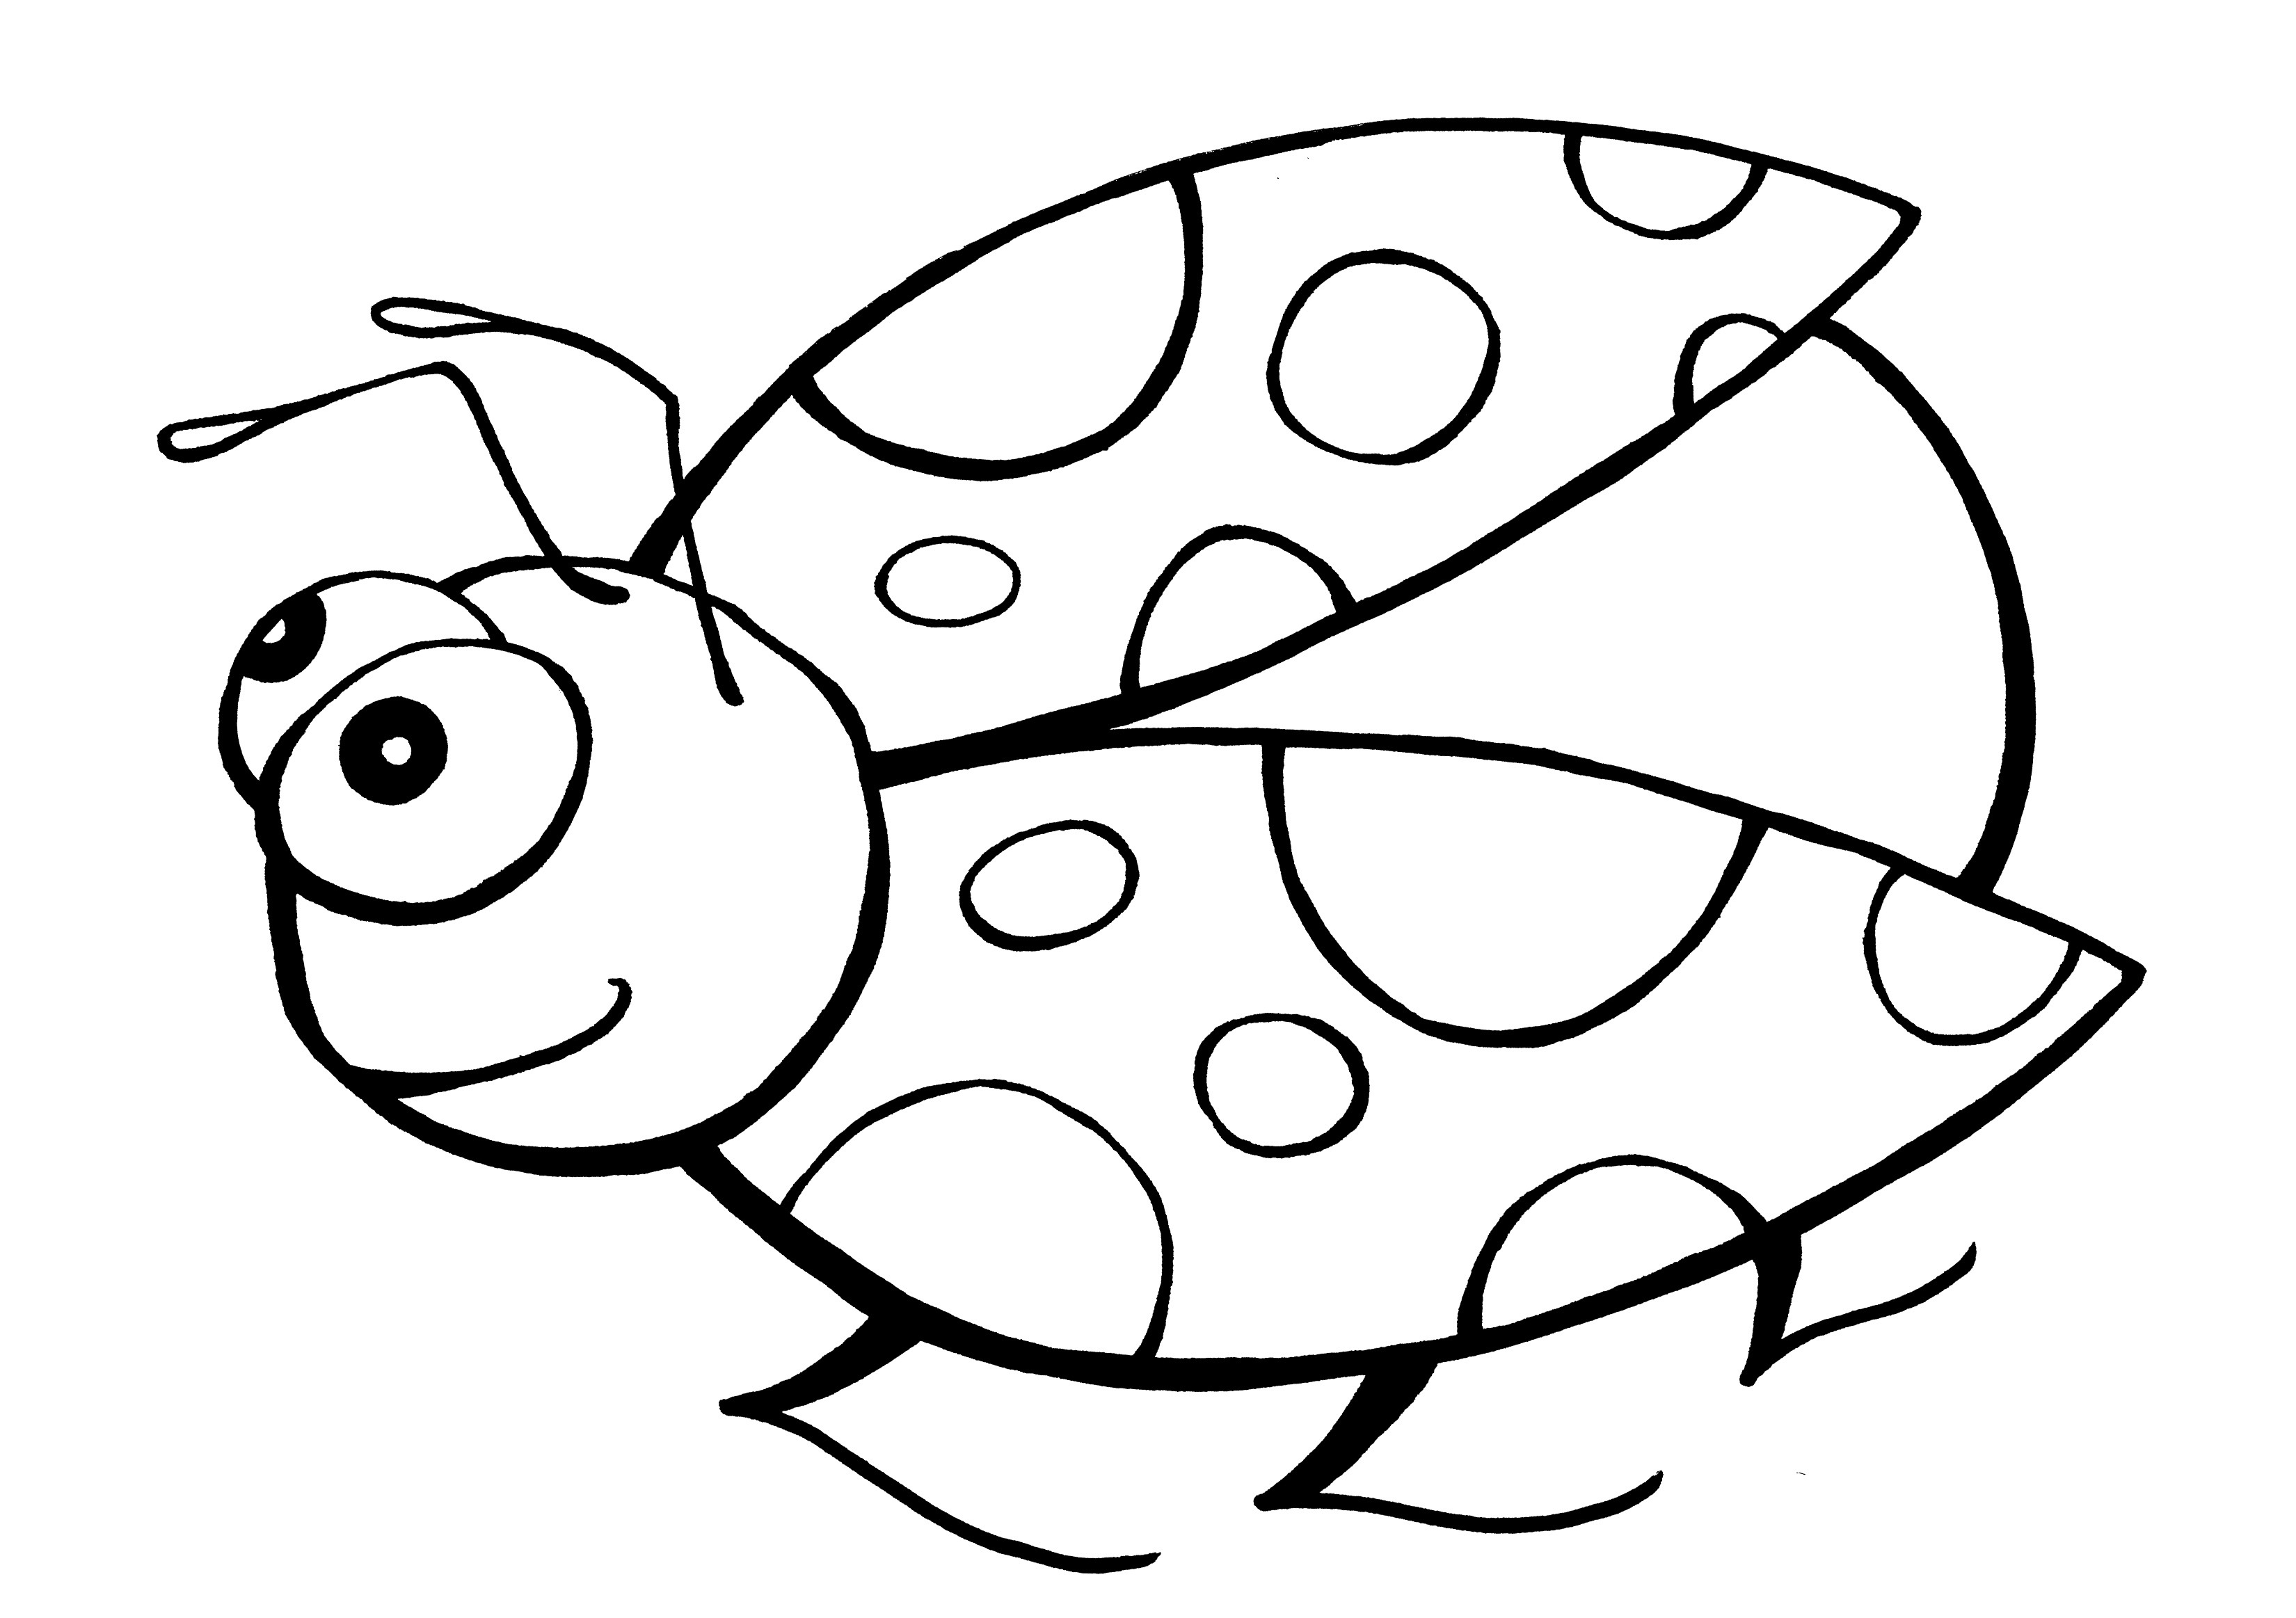 bug pictures to color insect coloring pages best coloring pages for kids bug color to pictures